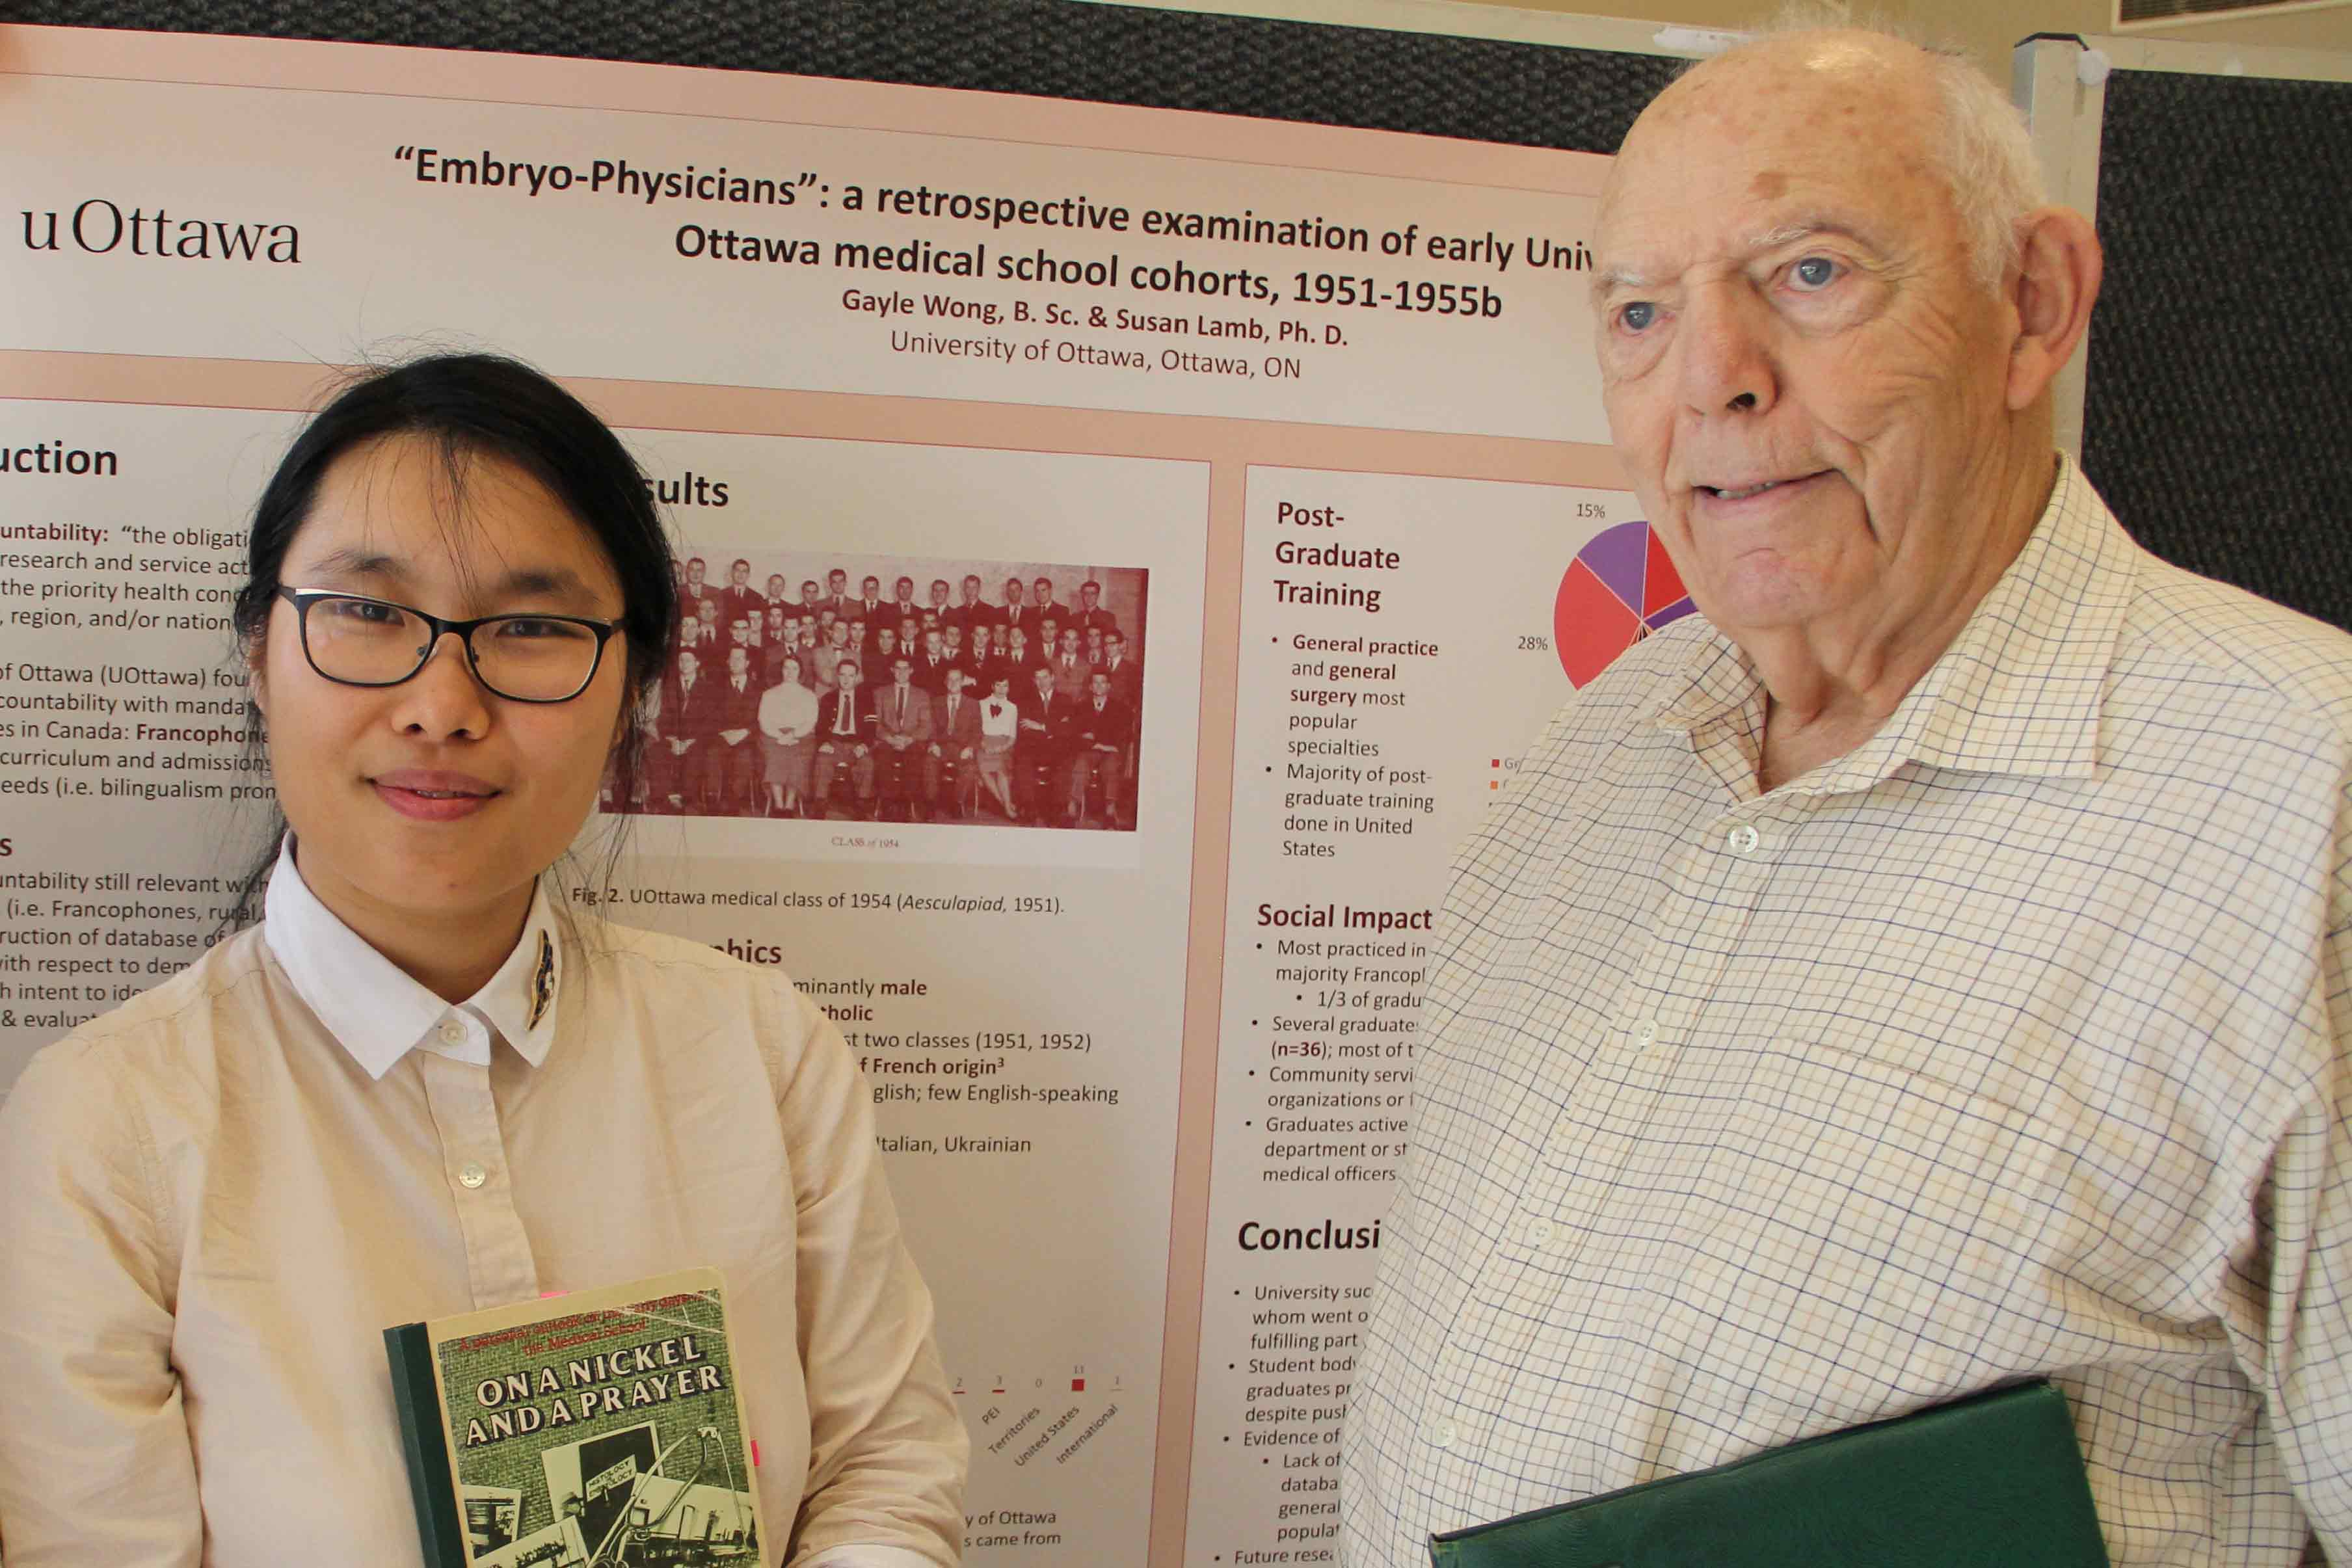 Photo of Gayle Wong and Dr. George Taylor standing in front of her poster.